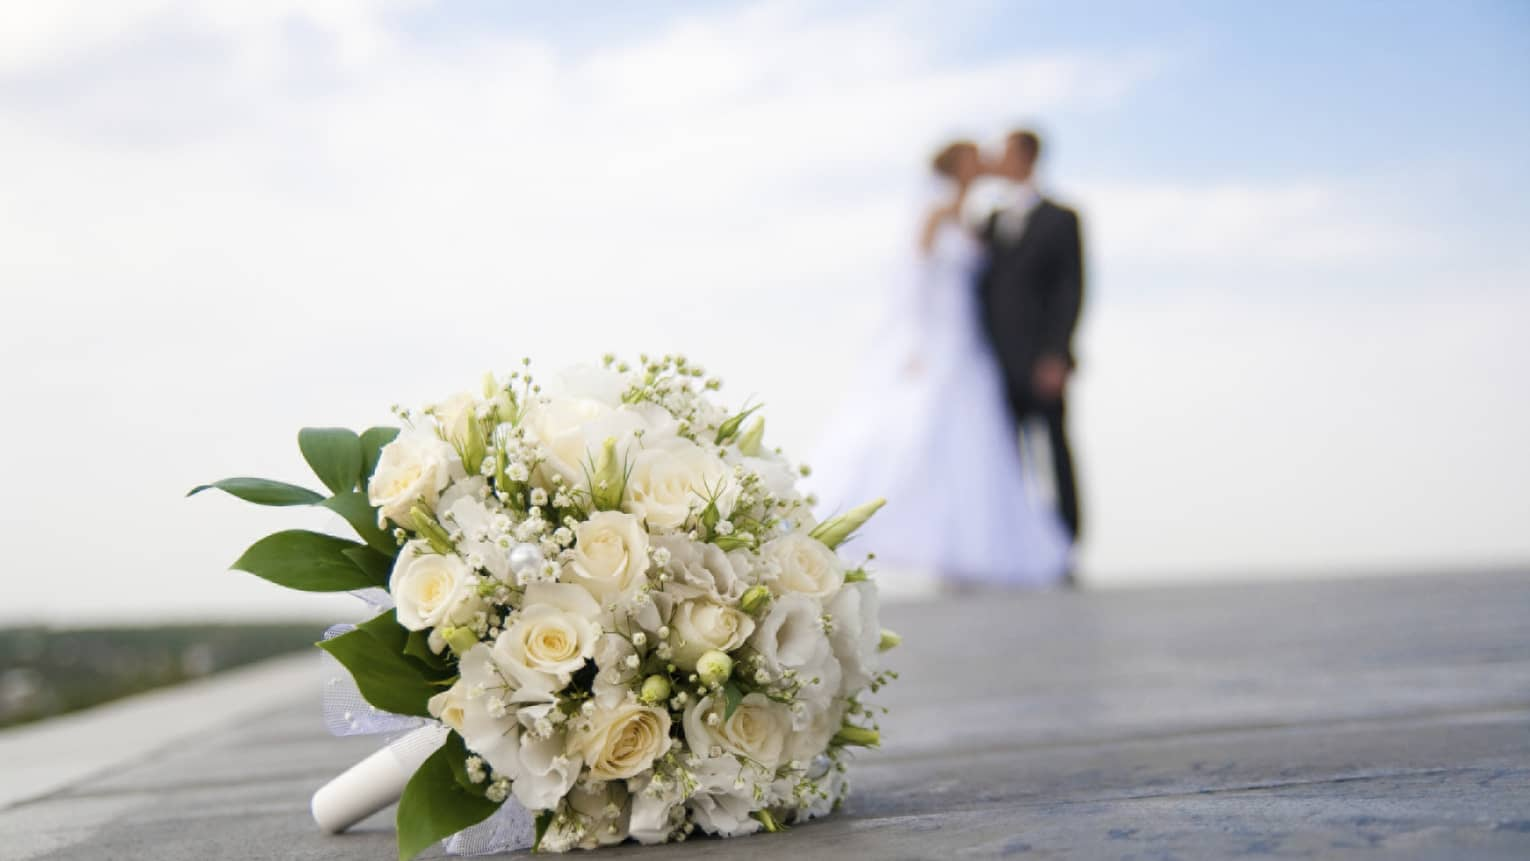 White floral wedding bouquet on ground, bride and groom kissing in background